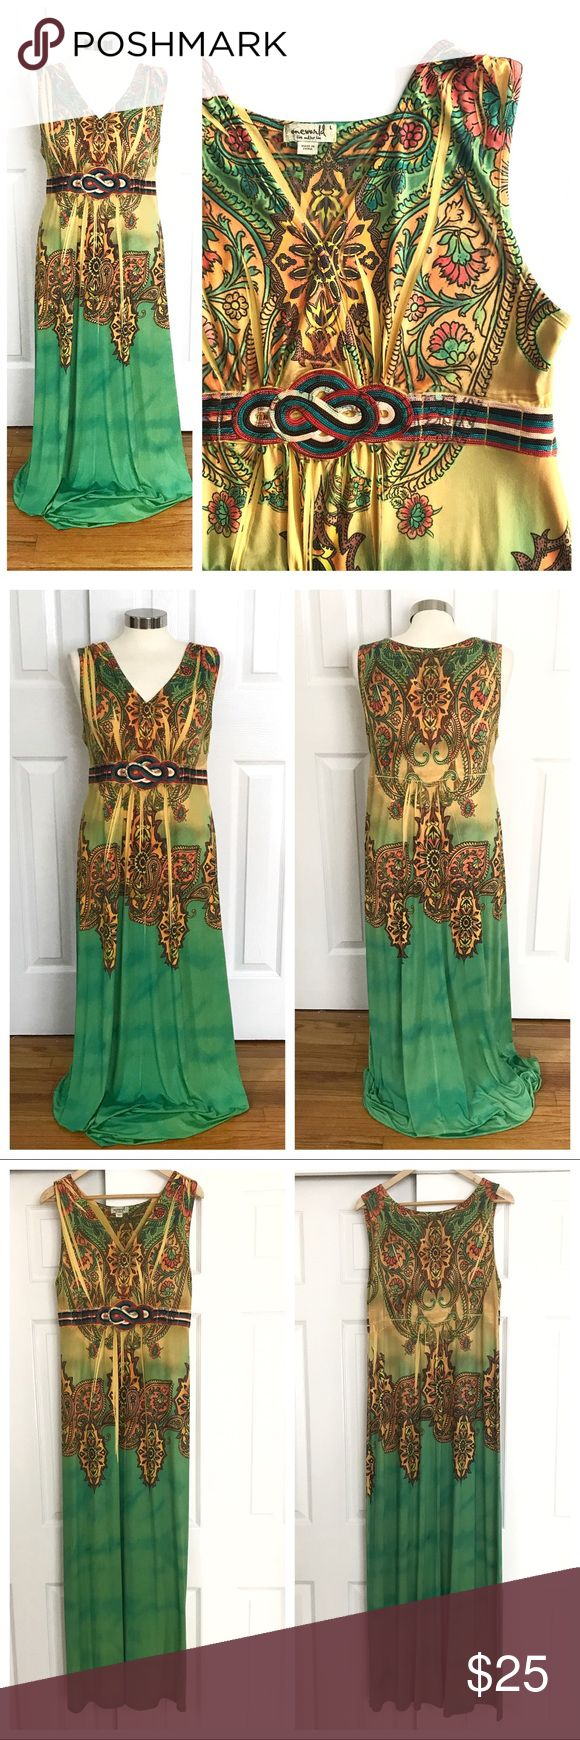 One World Yellow & Green Maxi Dress Vneck sleeveless long maxi dress. Beautiful design with yellow, brown, orange and green. Some slight pilling on the inside of the skirt at the hem - can't see it at all when worn, just wanted to disclose! One World size large. 94% polyester 6% spandex. Stretch to fabric. ONE WORLD Dresses Maxi